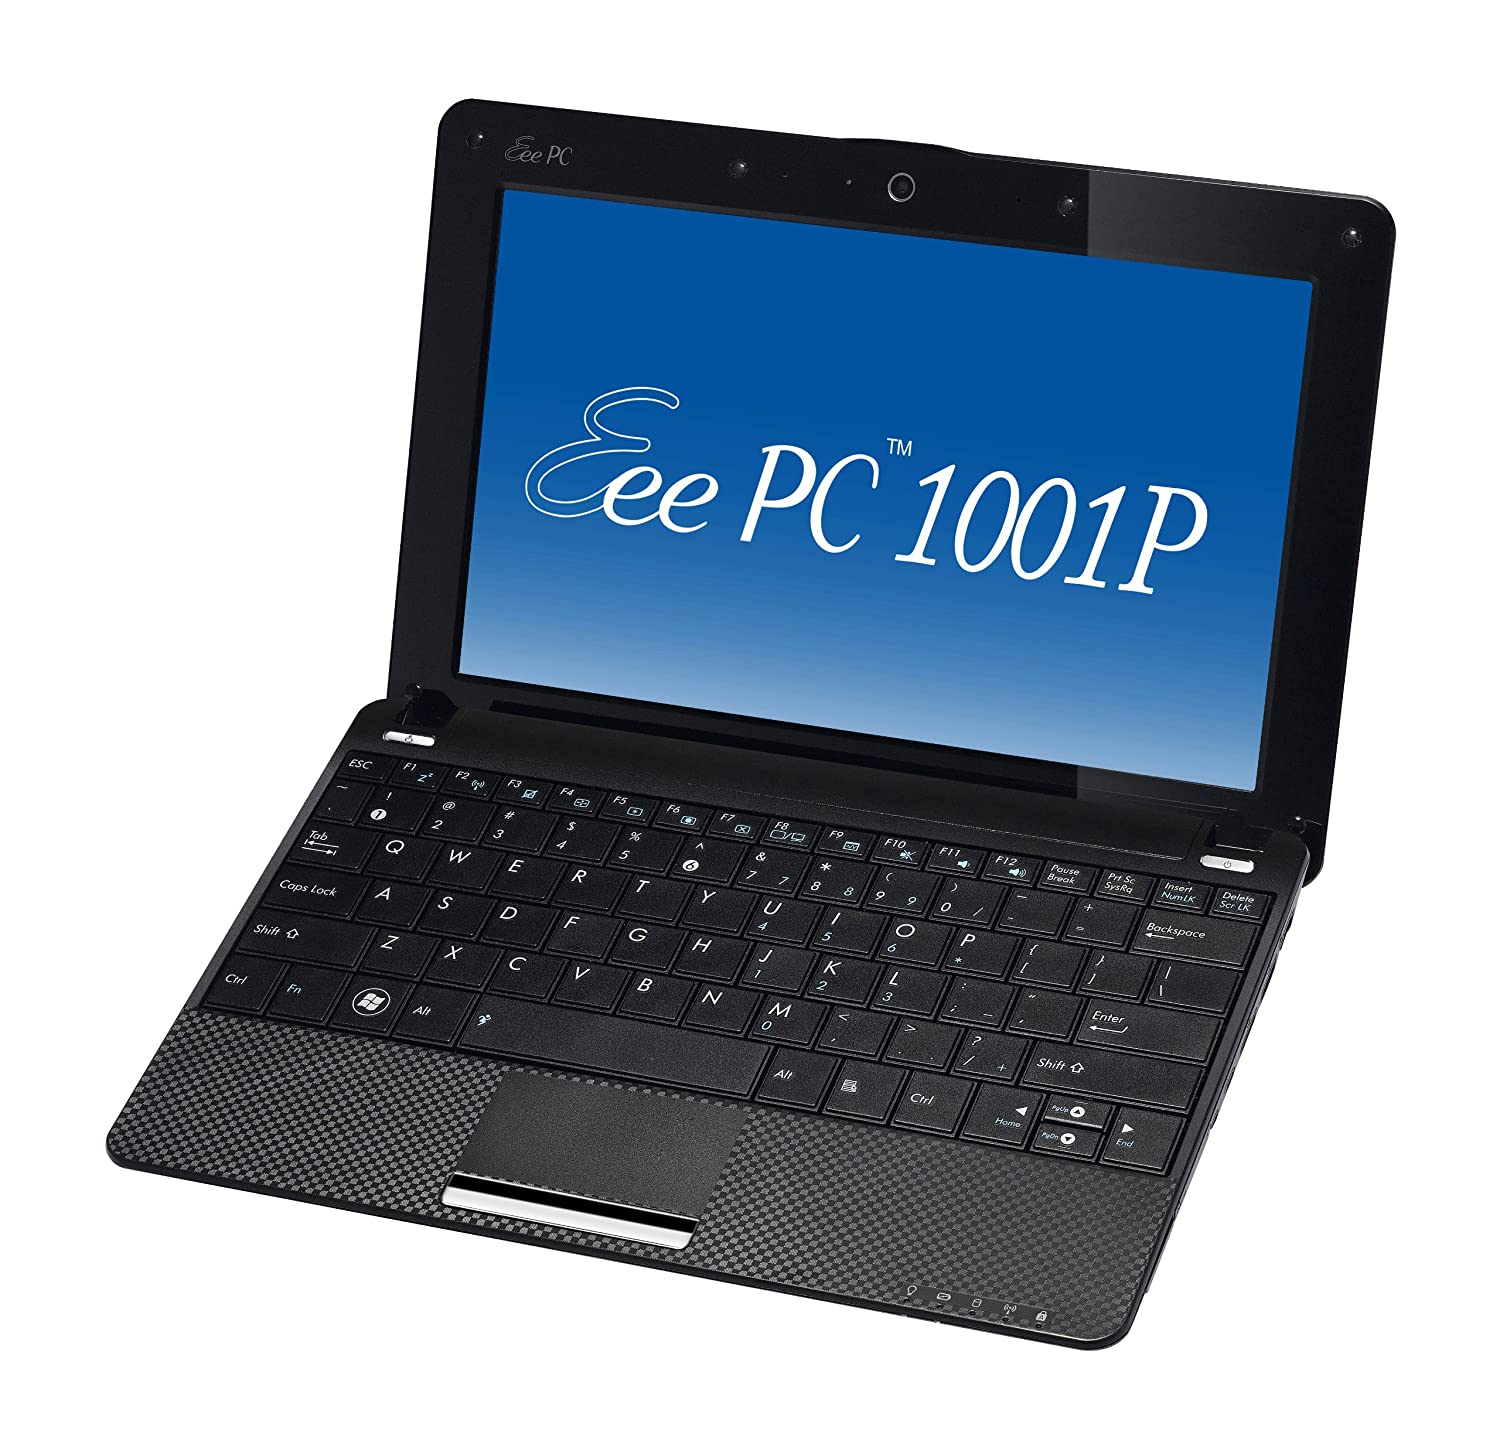 ASUS EEE PC 1001P NOTEBOOK INTEL CHIPSET DRIVER FOR WINDOWS 10